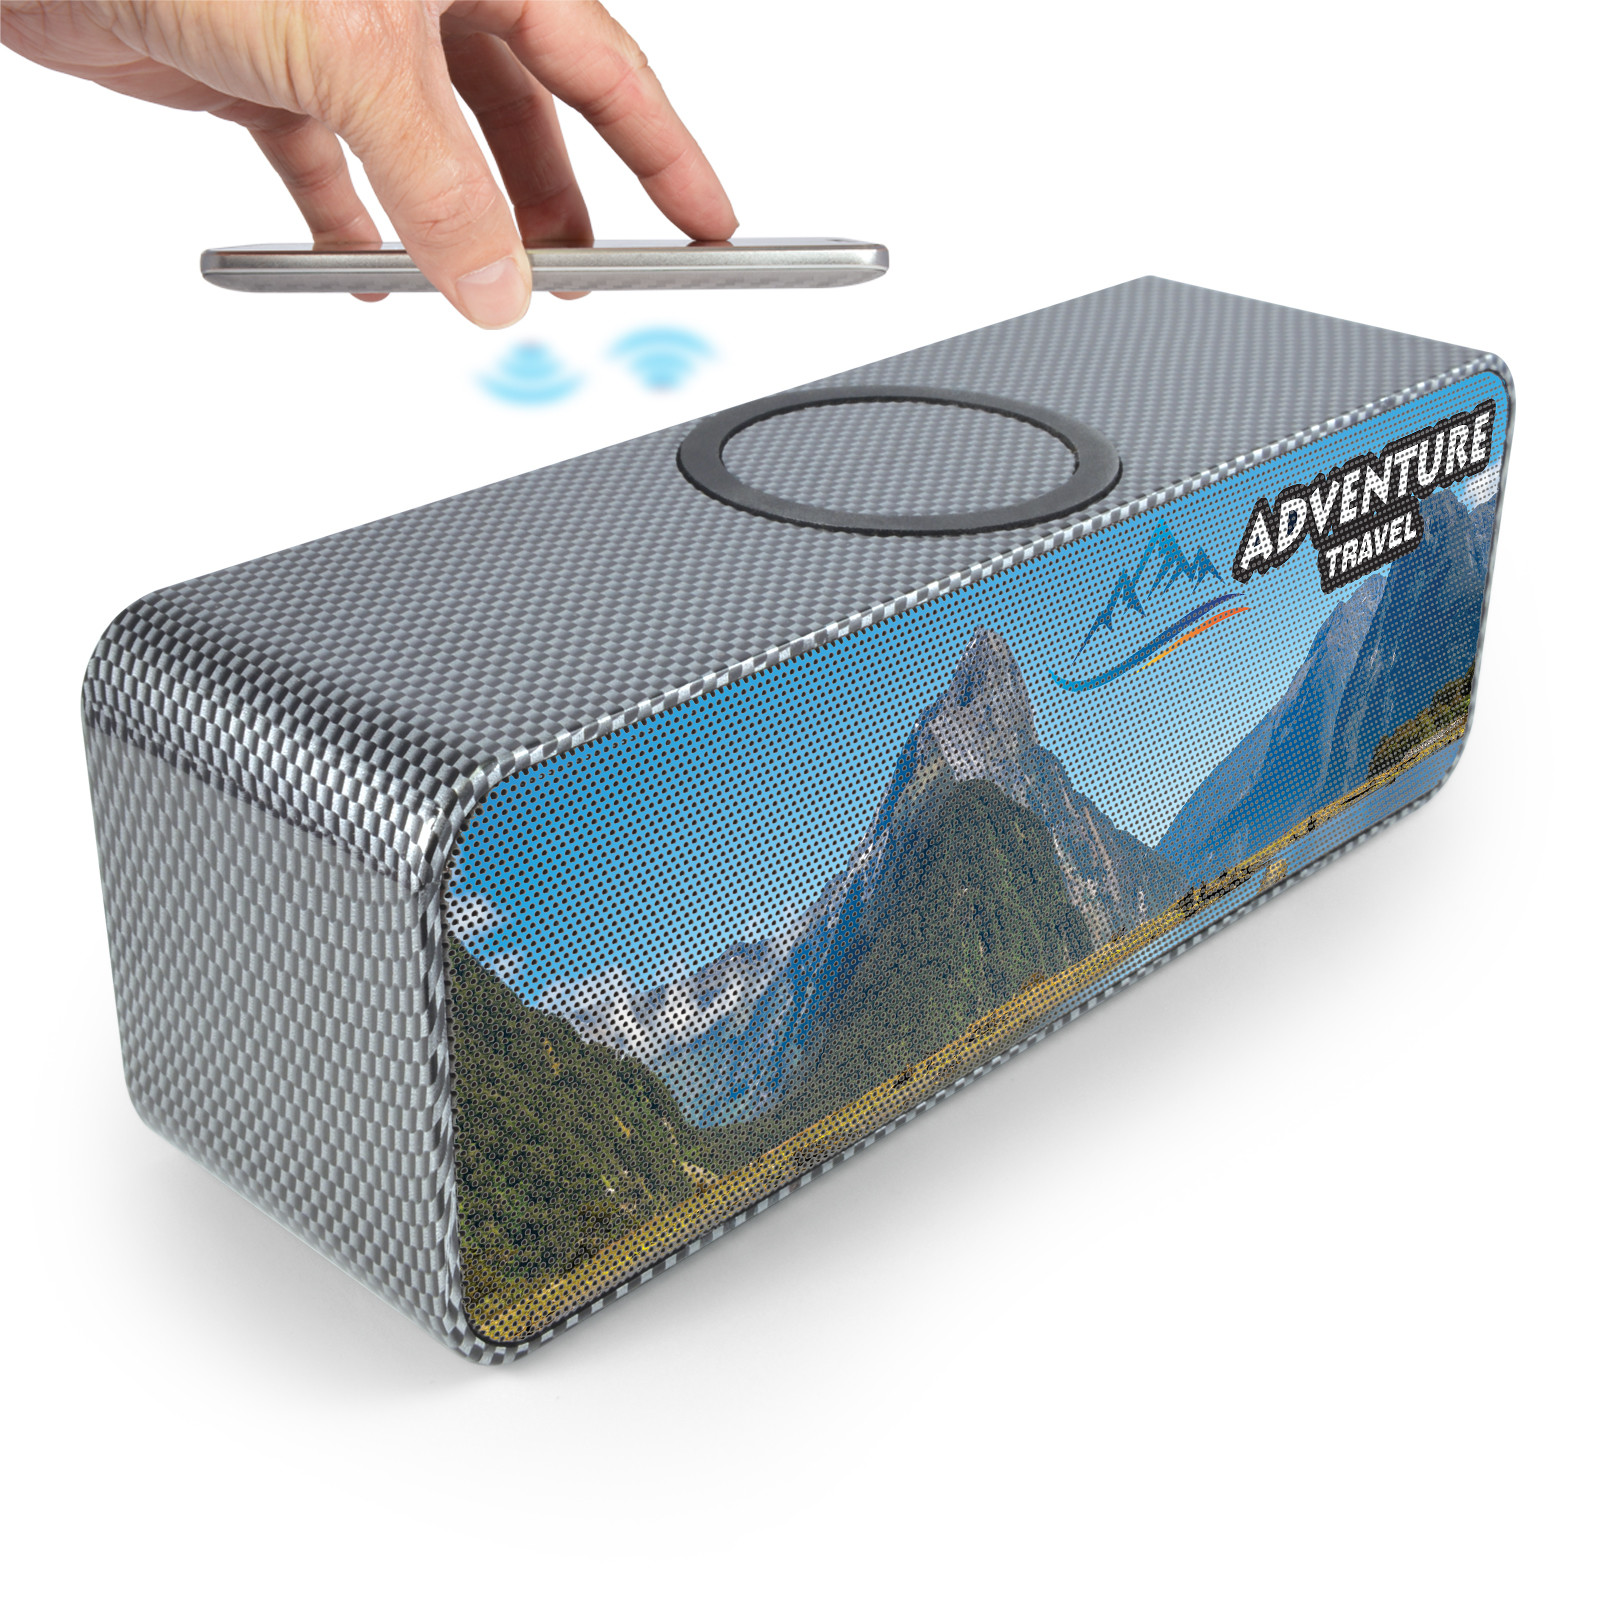 Promotional Product Shogun Speaker & Inductive Charger